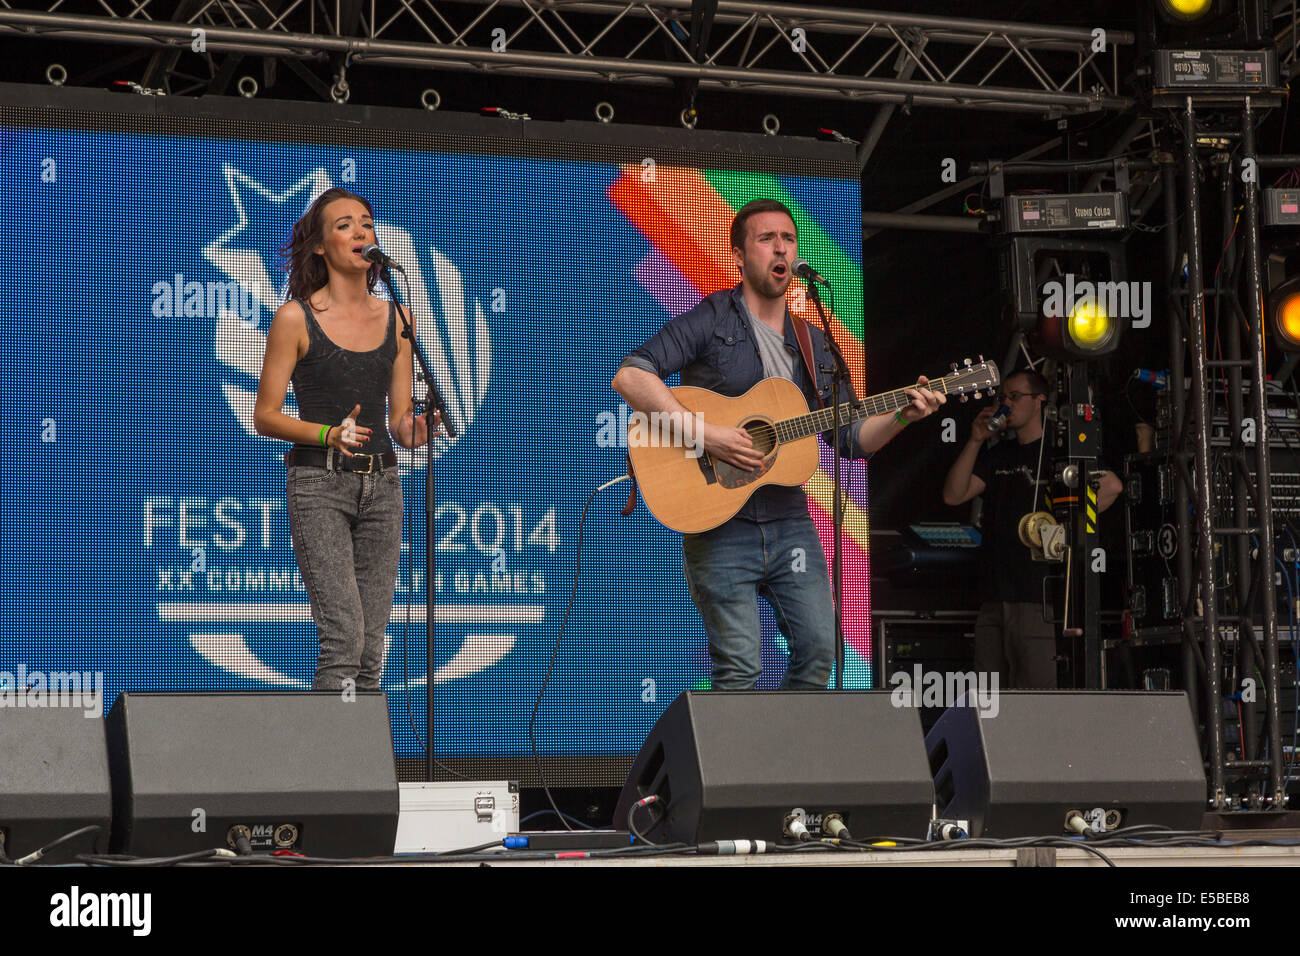 Man And Woman Perform On Stage Singing With Acoustic Guitar West